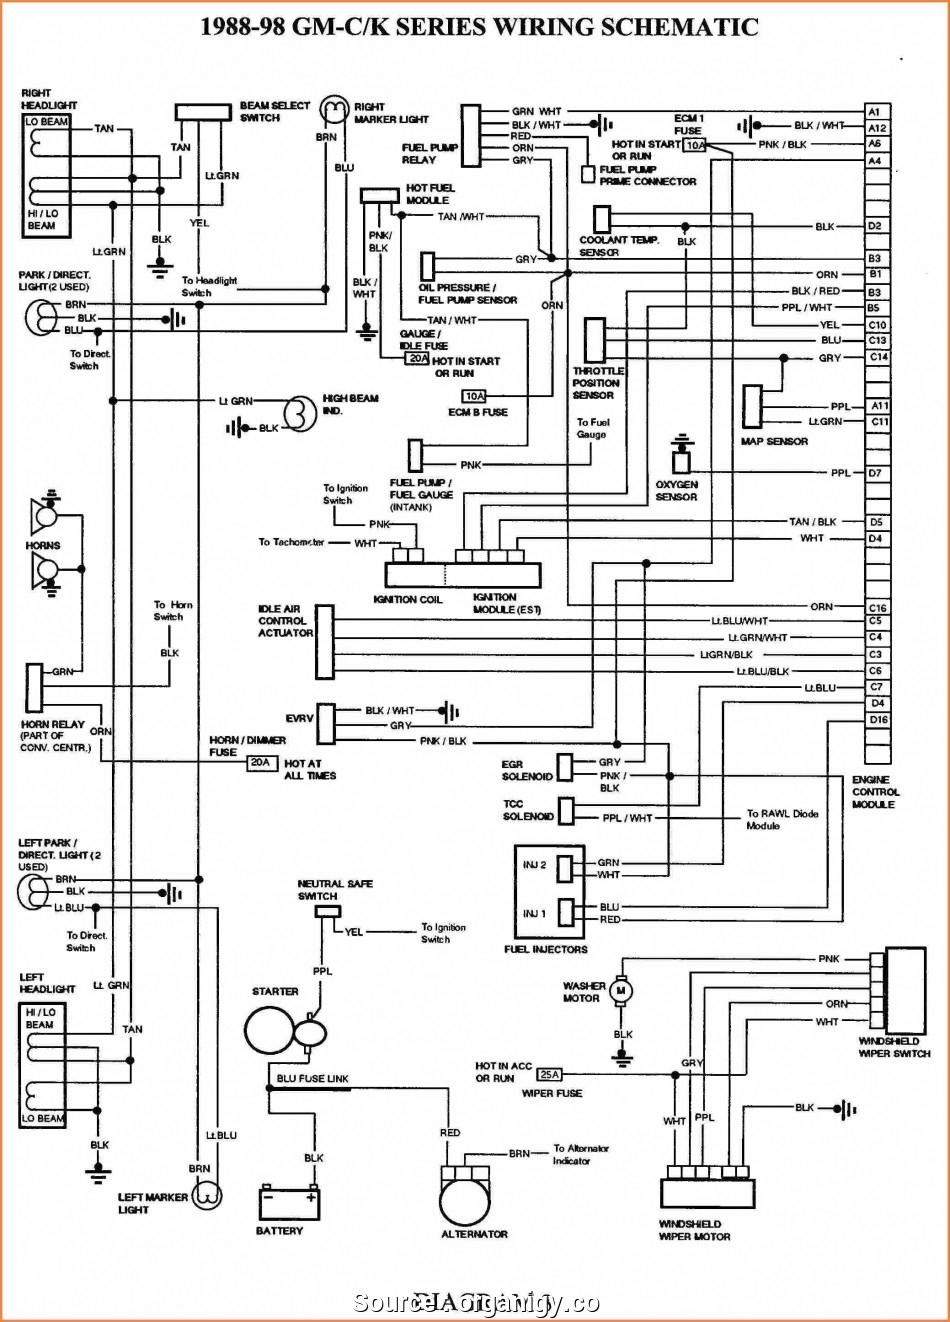 86 Chevy Starter Wiring Diagram Perfect Tbi Wiring Diagram 1989 - Starter Solenoid Wiring Diagram Chevy